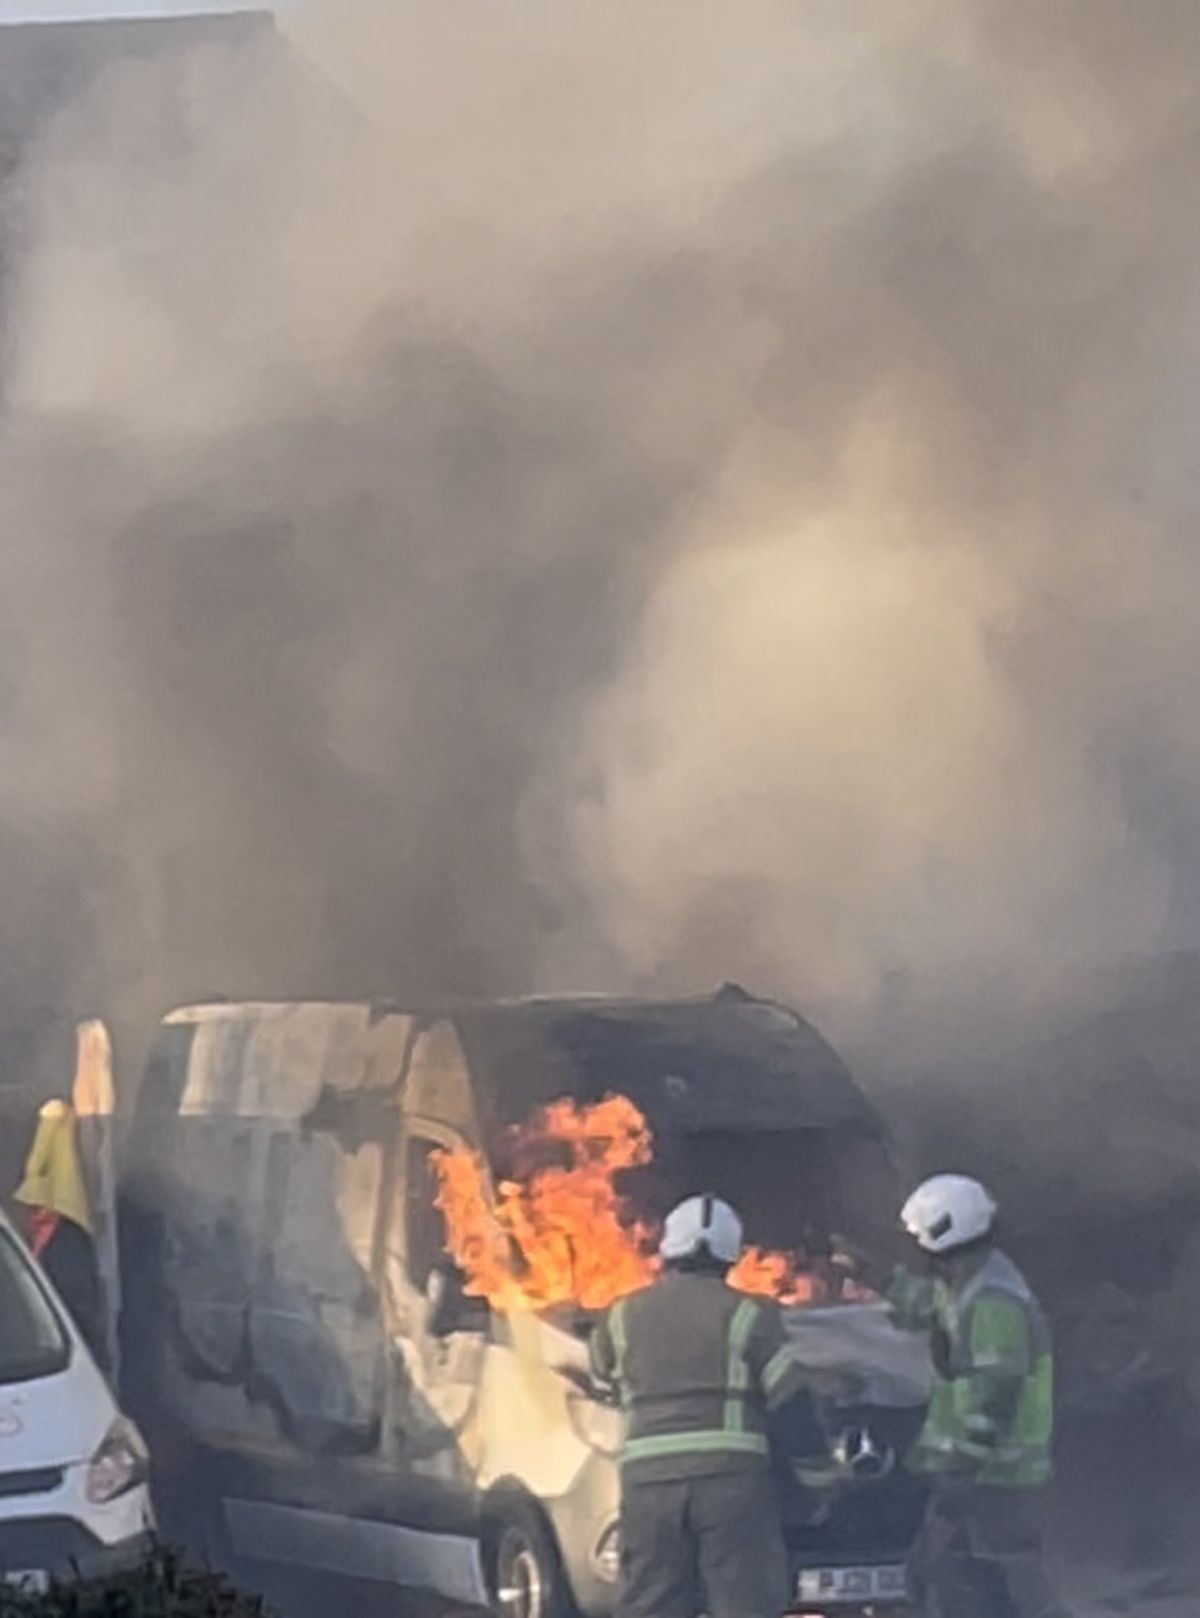 Firefighters work to extinguish the fire engulfing a van in Pencombe Drive